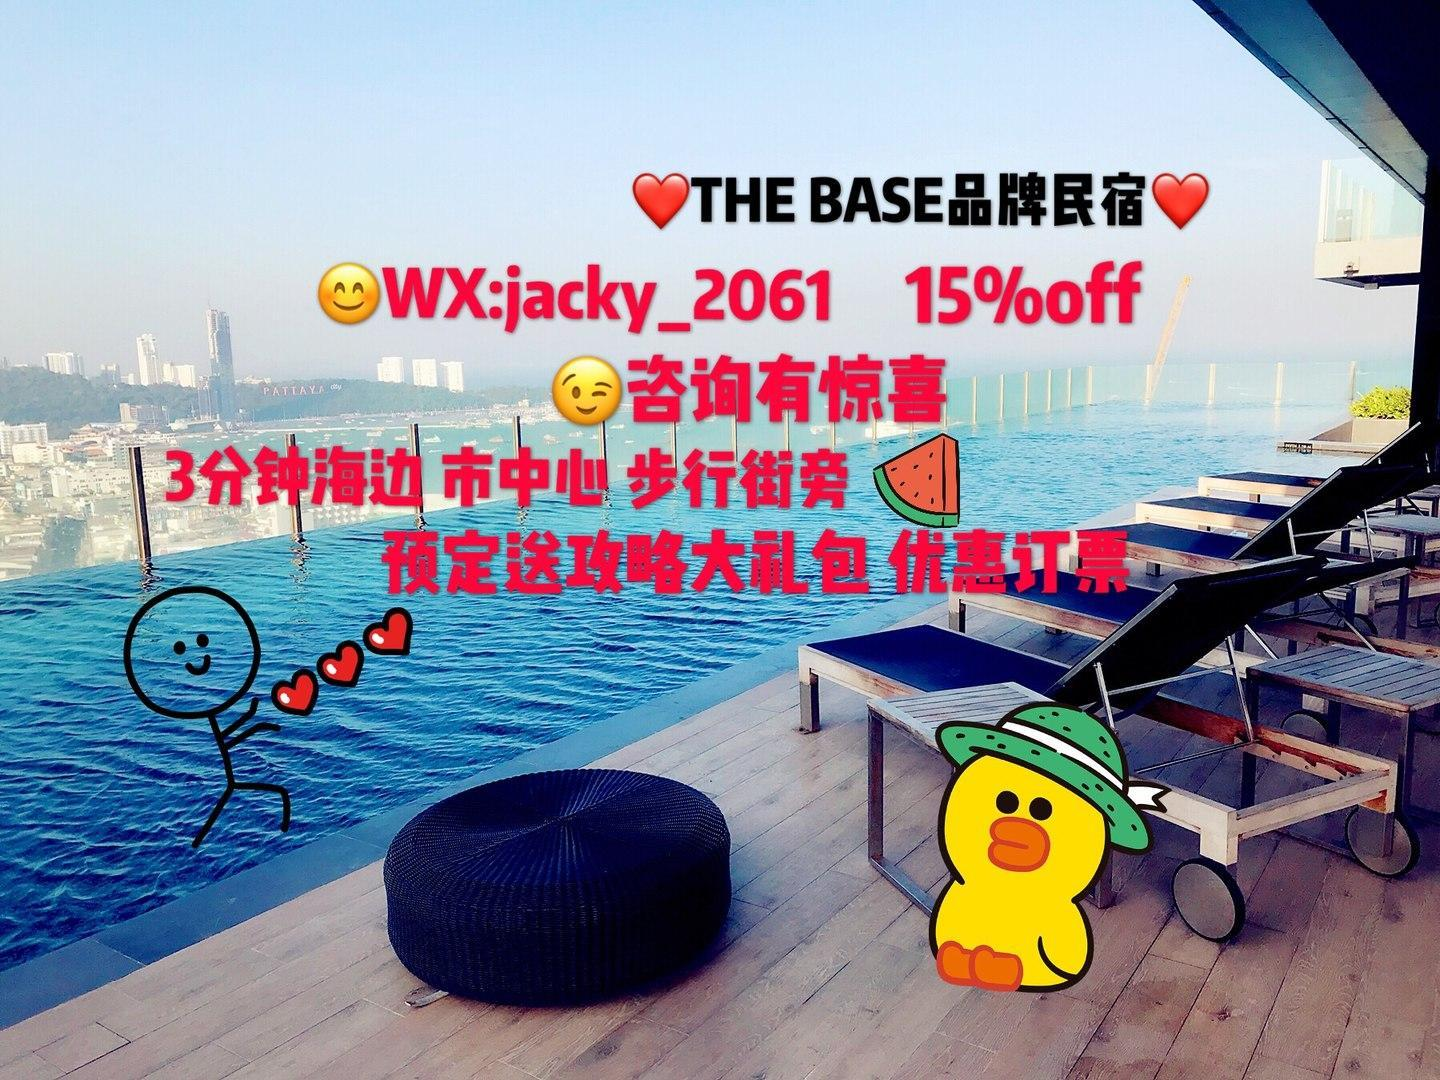 E4THE BASE Brand BandB Recommend Infinity Pool